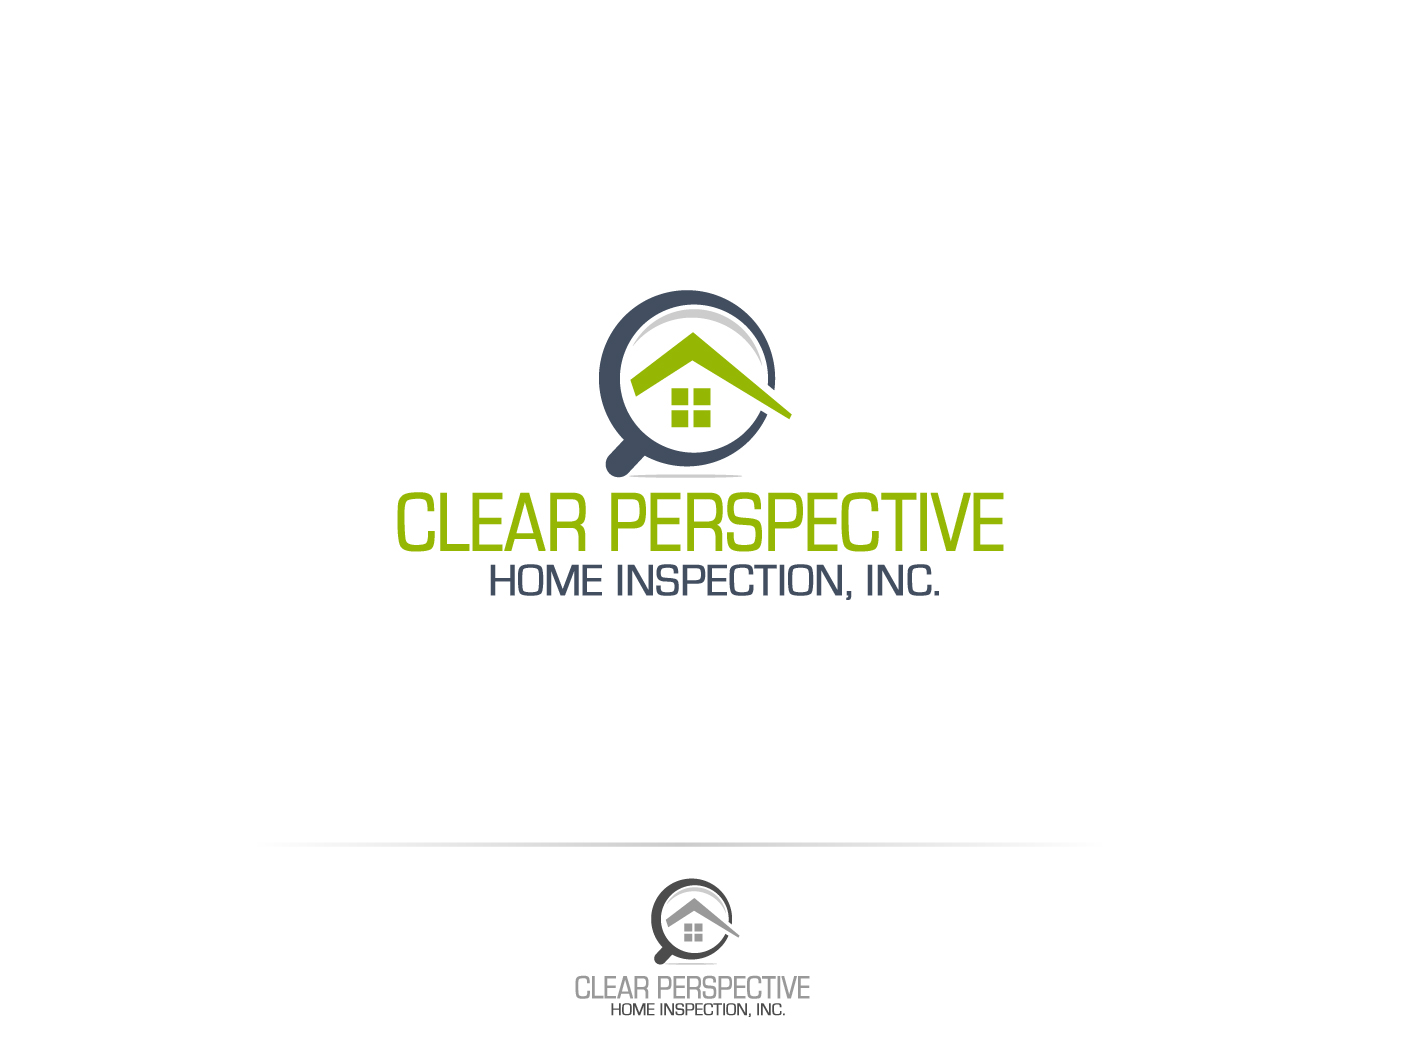 Elegant Logo Design By DesignPlus For Clear Perspective Home Inspection, Inc.    Design #4242477